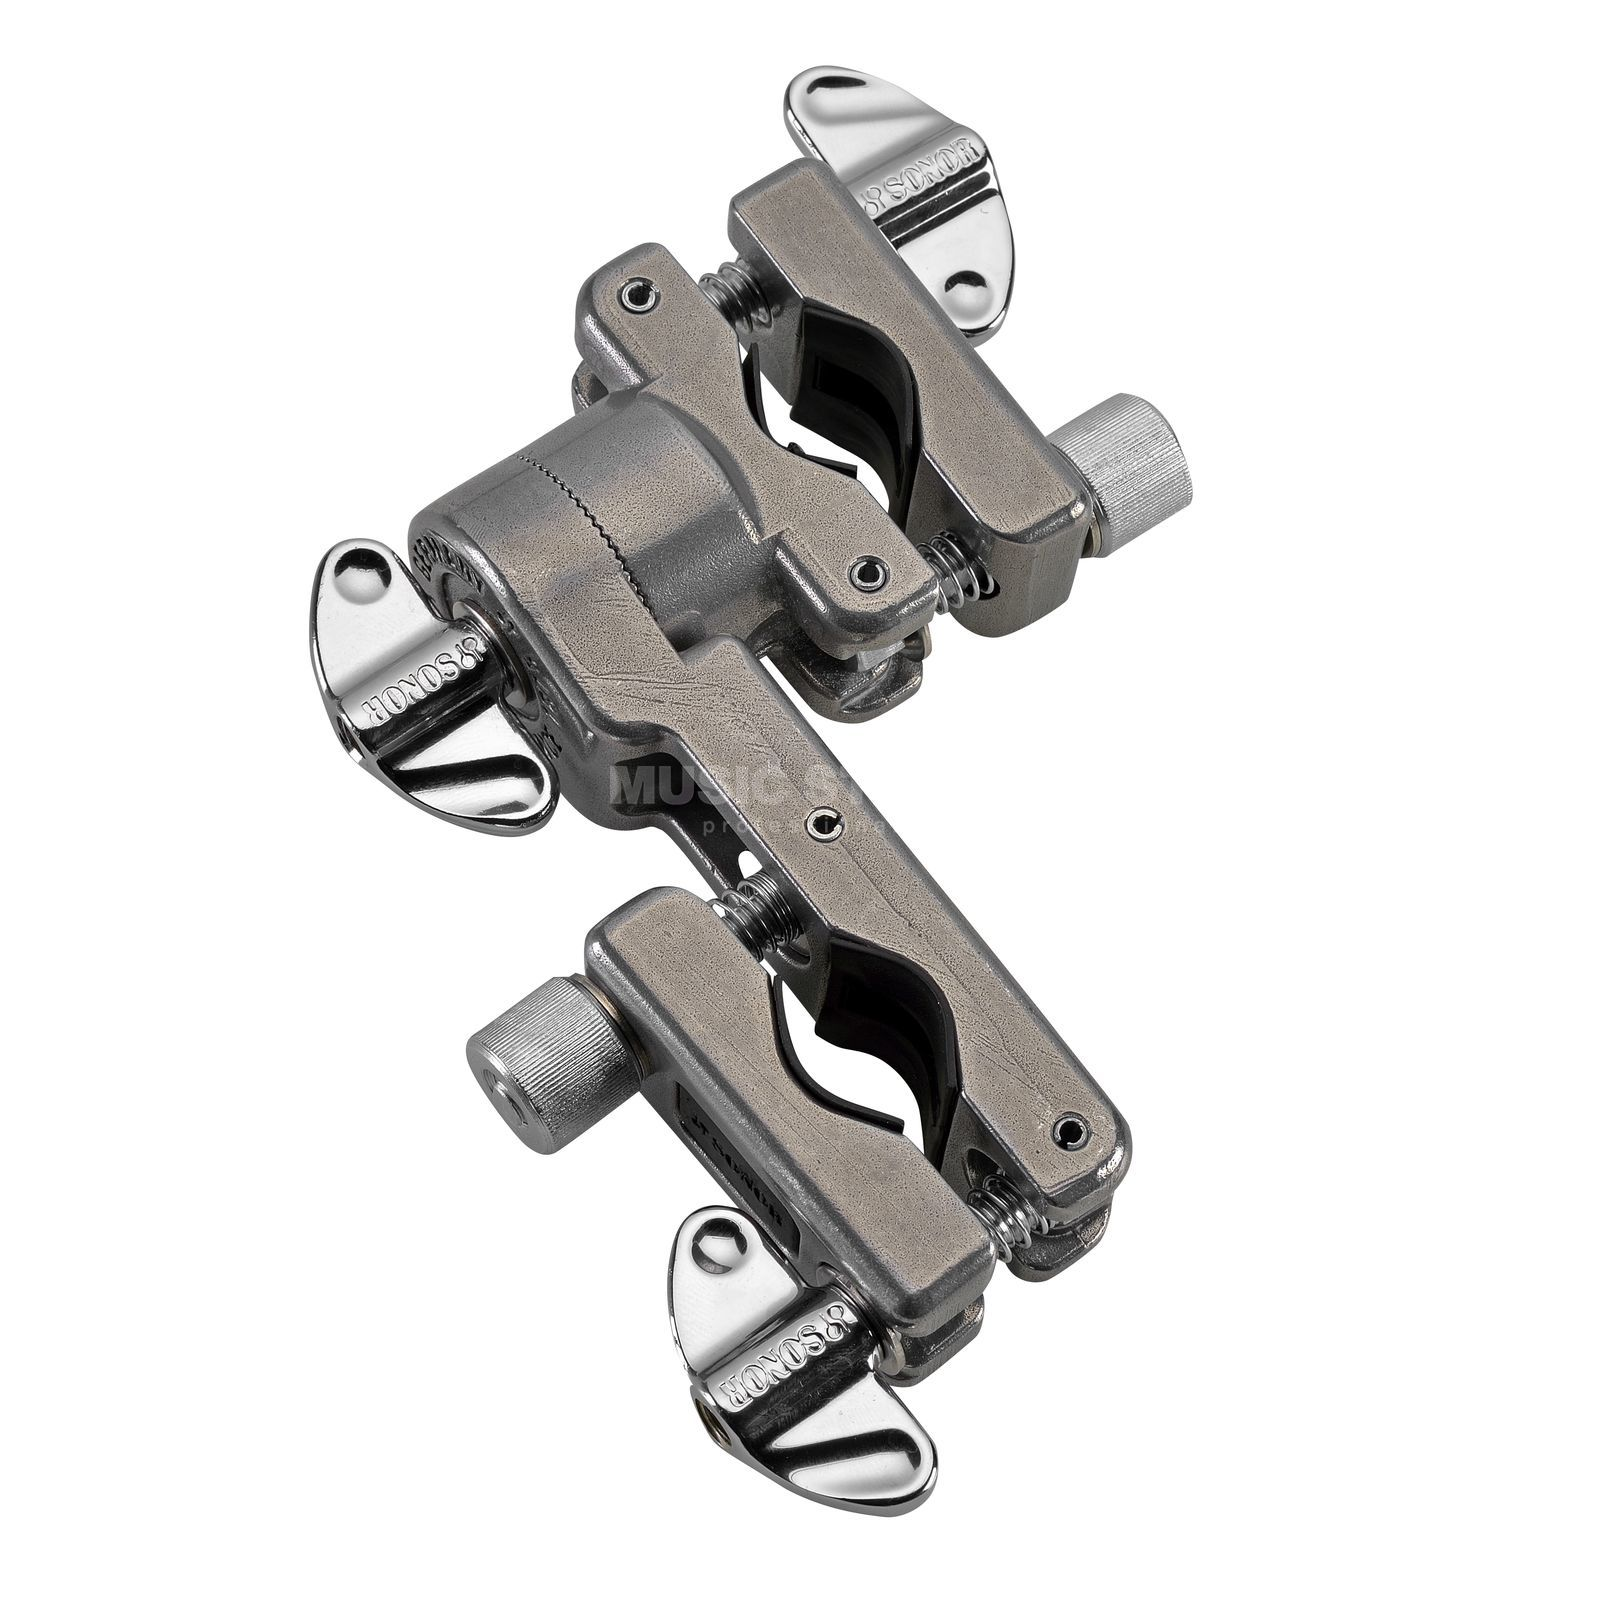 Sonor Adjustable Clamp MH-AC Produktbild